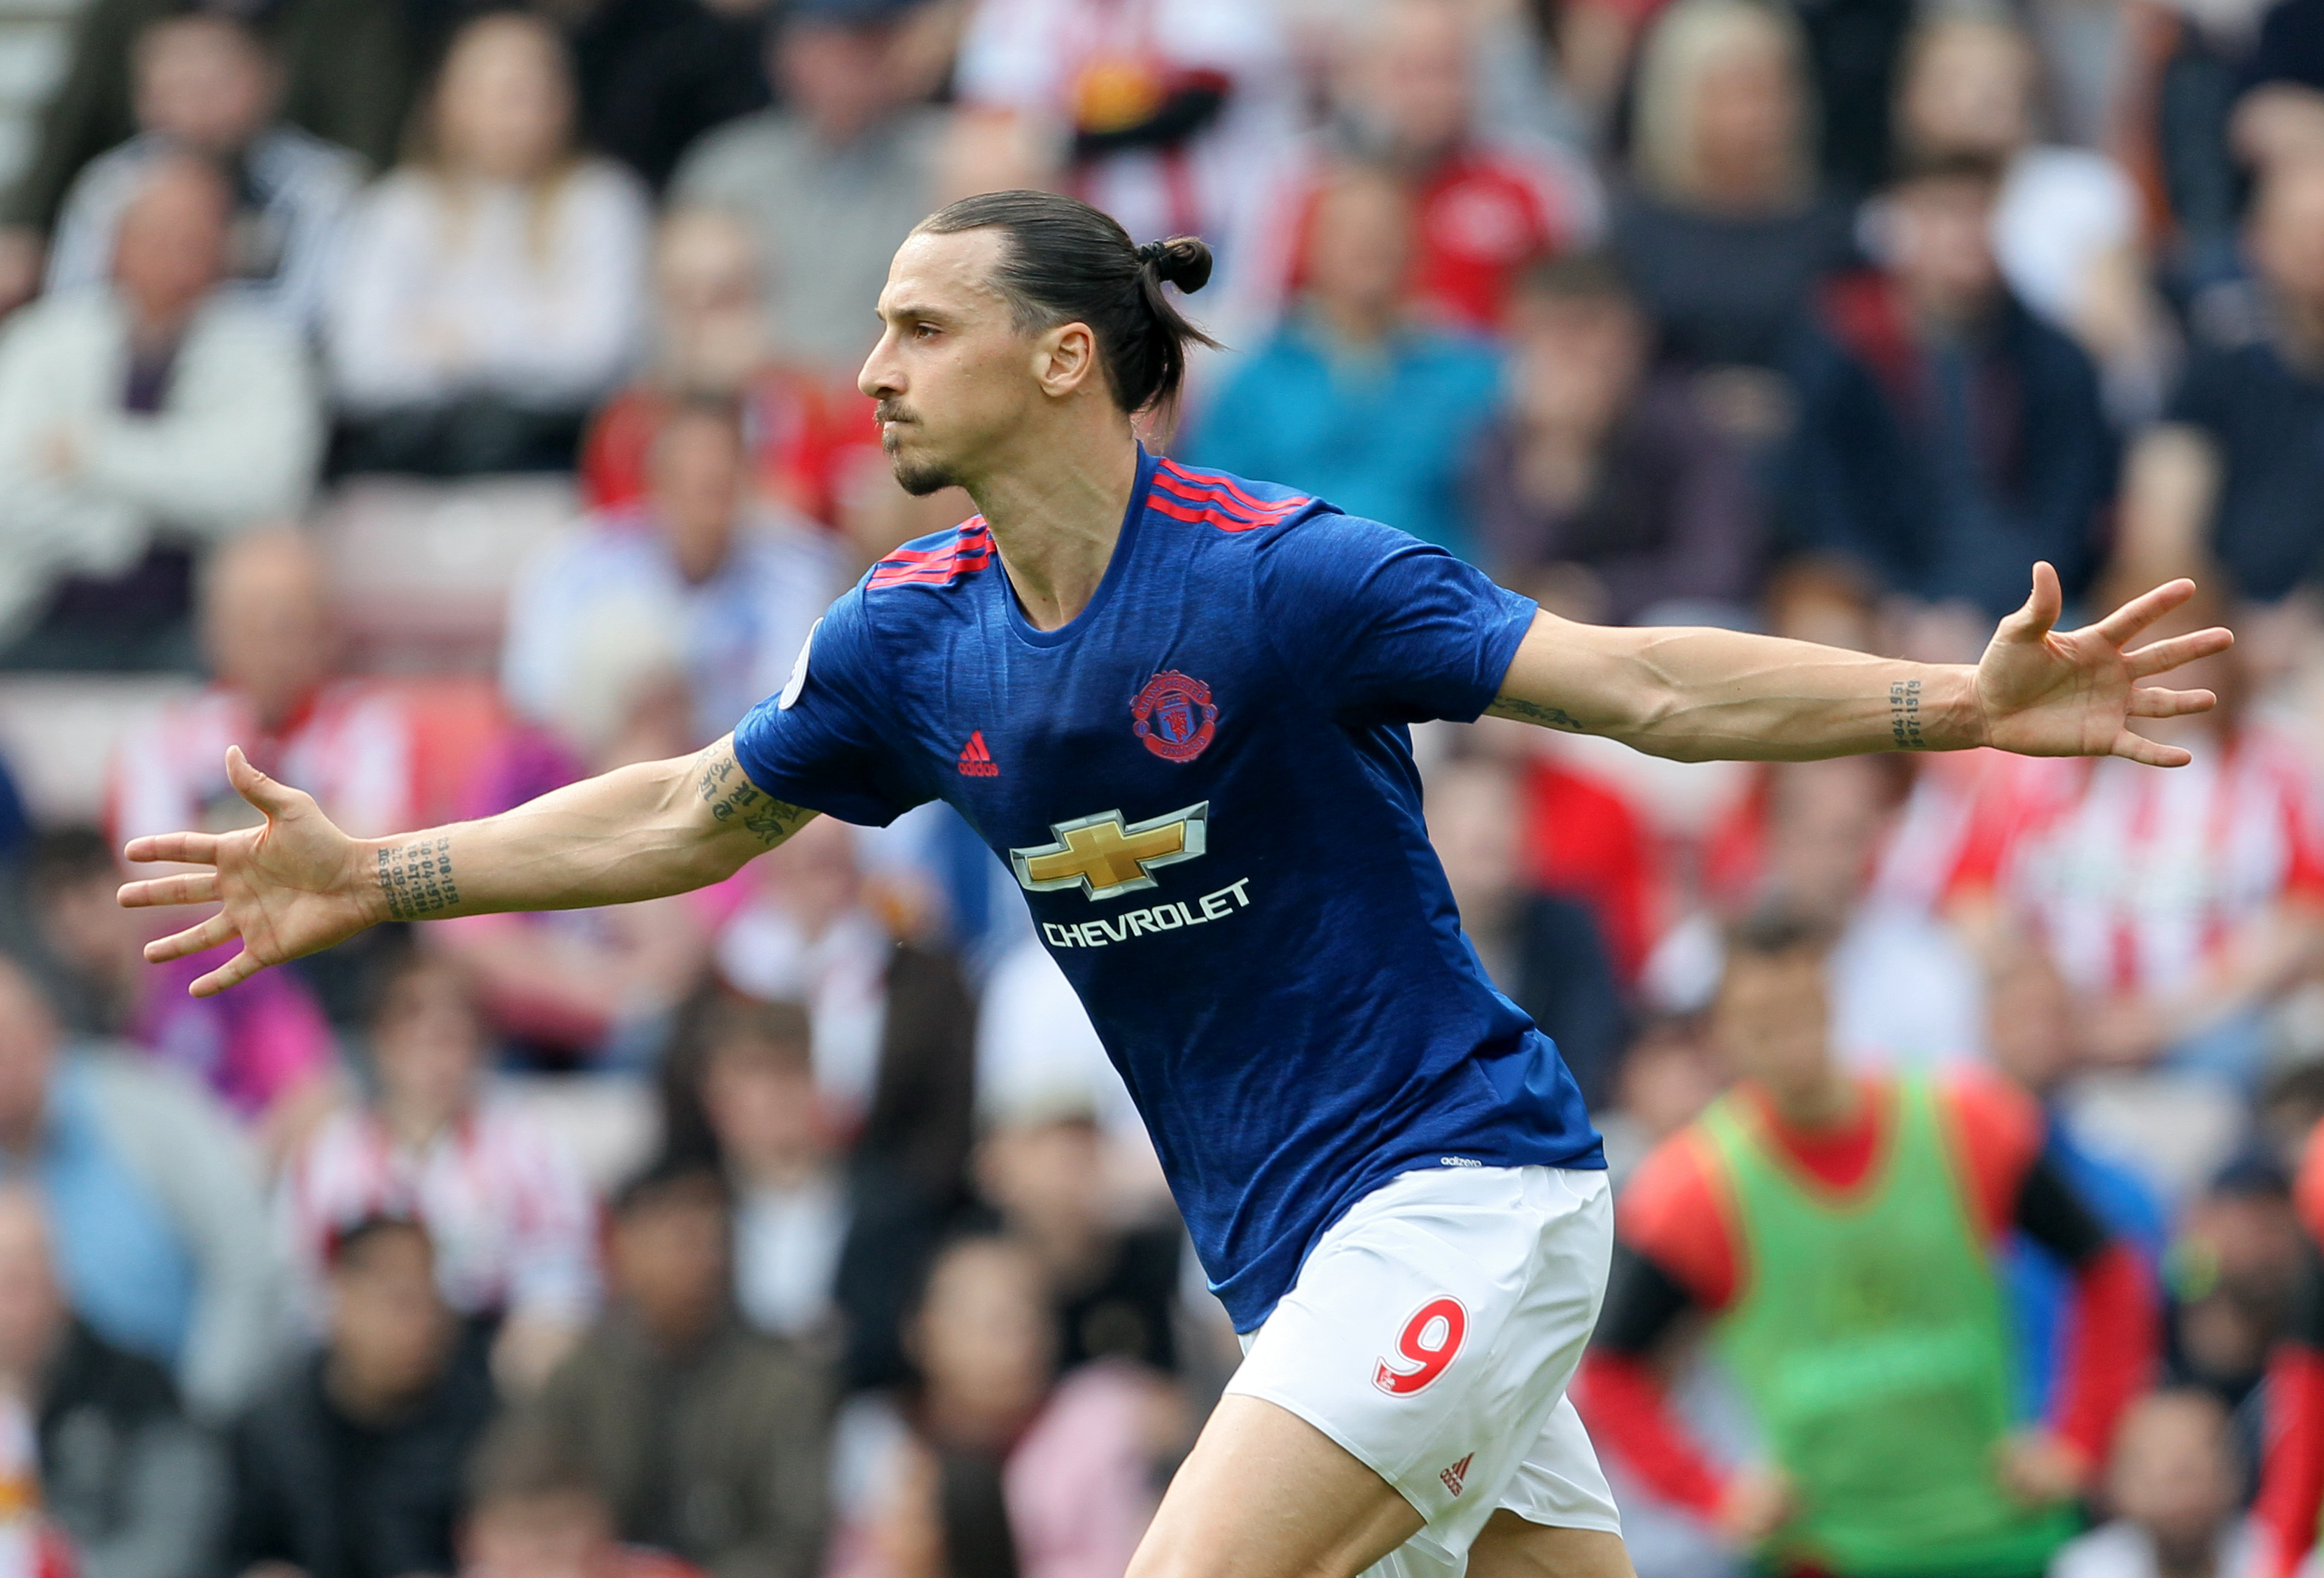 Ibrahimovic, Fellaini and Jones come through training unscathed ahead of Manchester derby